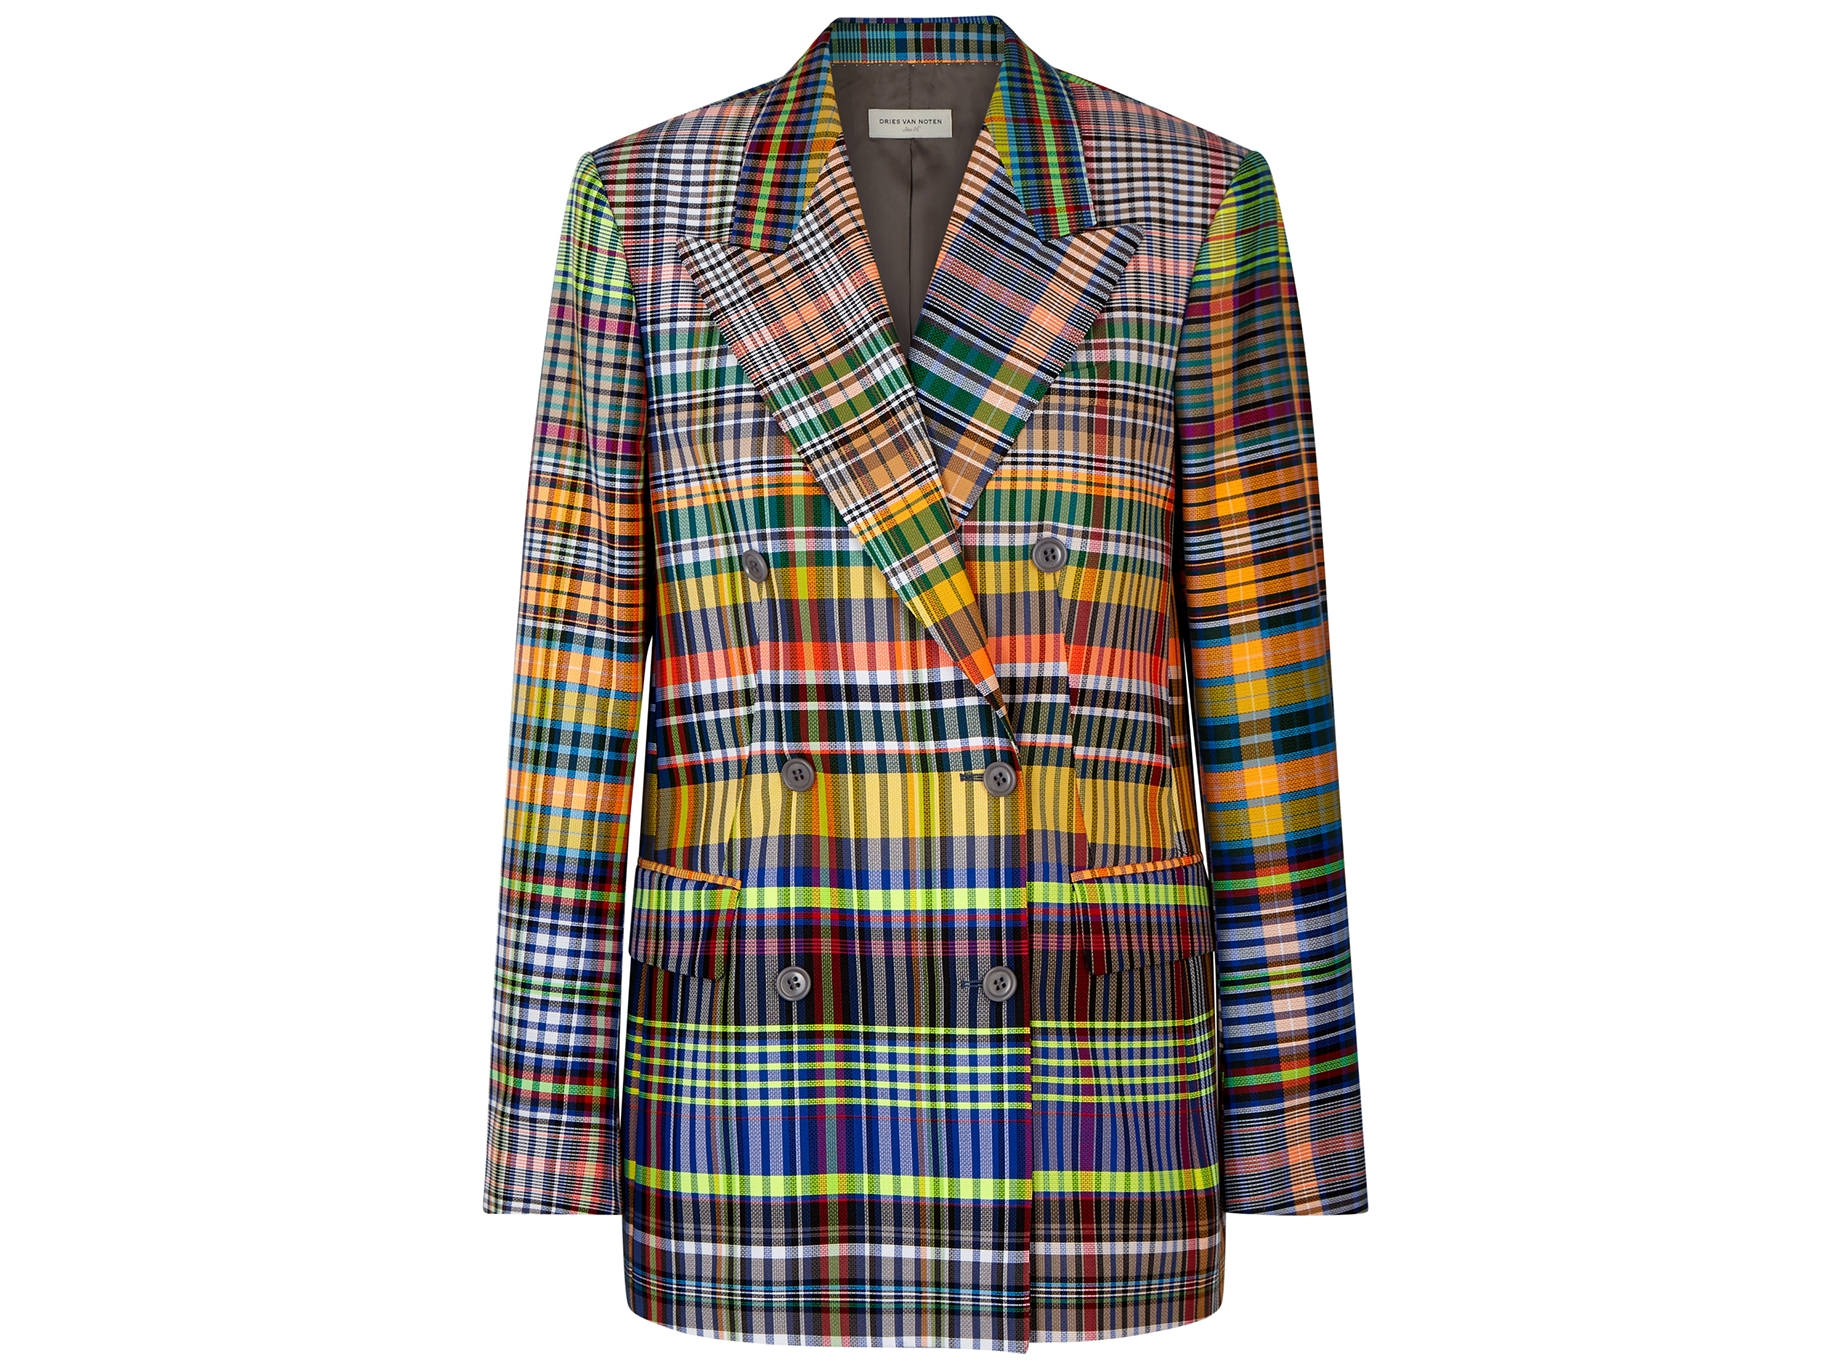 67e46131c7 Dries Van Noten Bovan checked woven blazer - Harvey Nichols